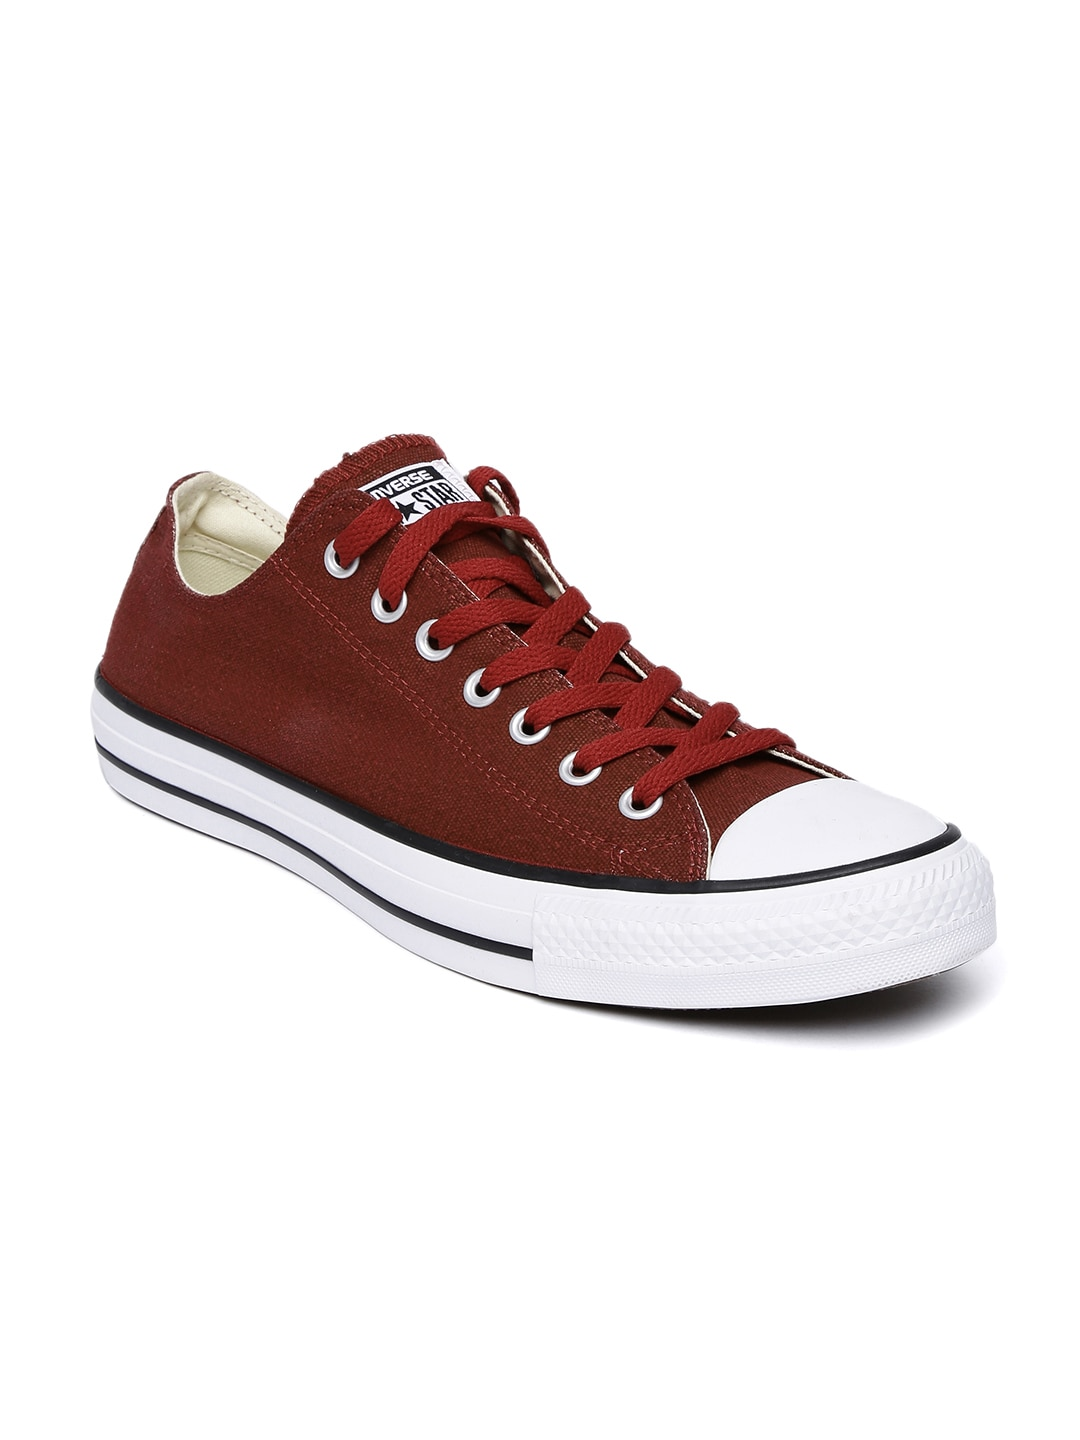 dd5a2326898 Converse 149504c Men Rust Brown Sneakers - Best Price in India ...